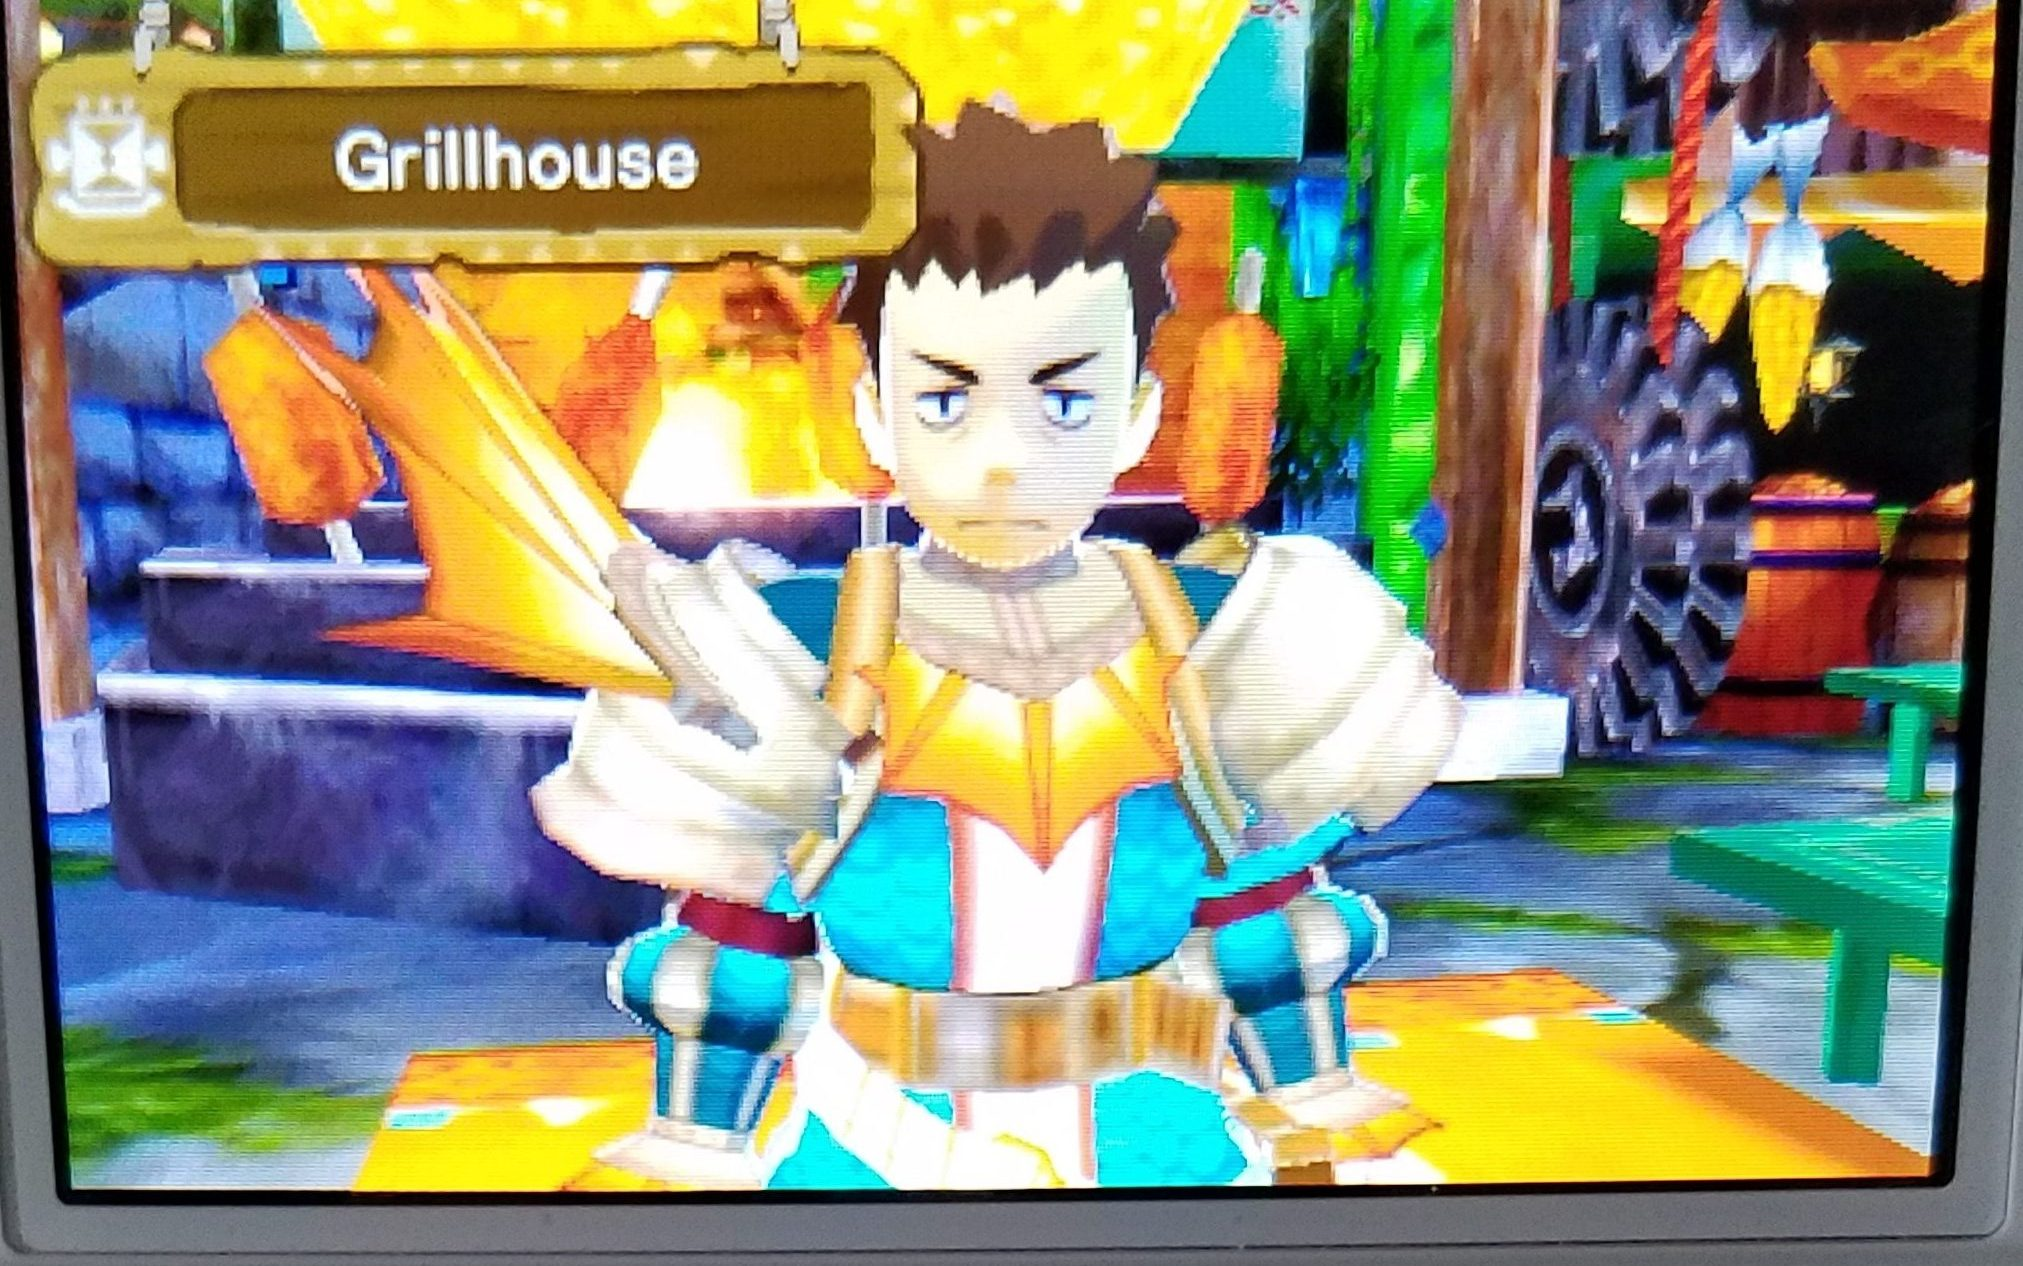 Monster Hunter Stories Cooking Meat On A Bbq Spit Gamecuddle